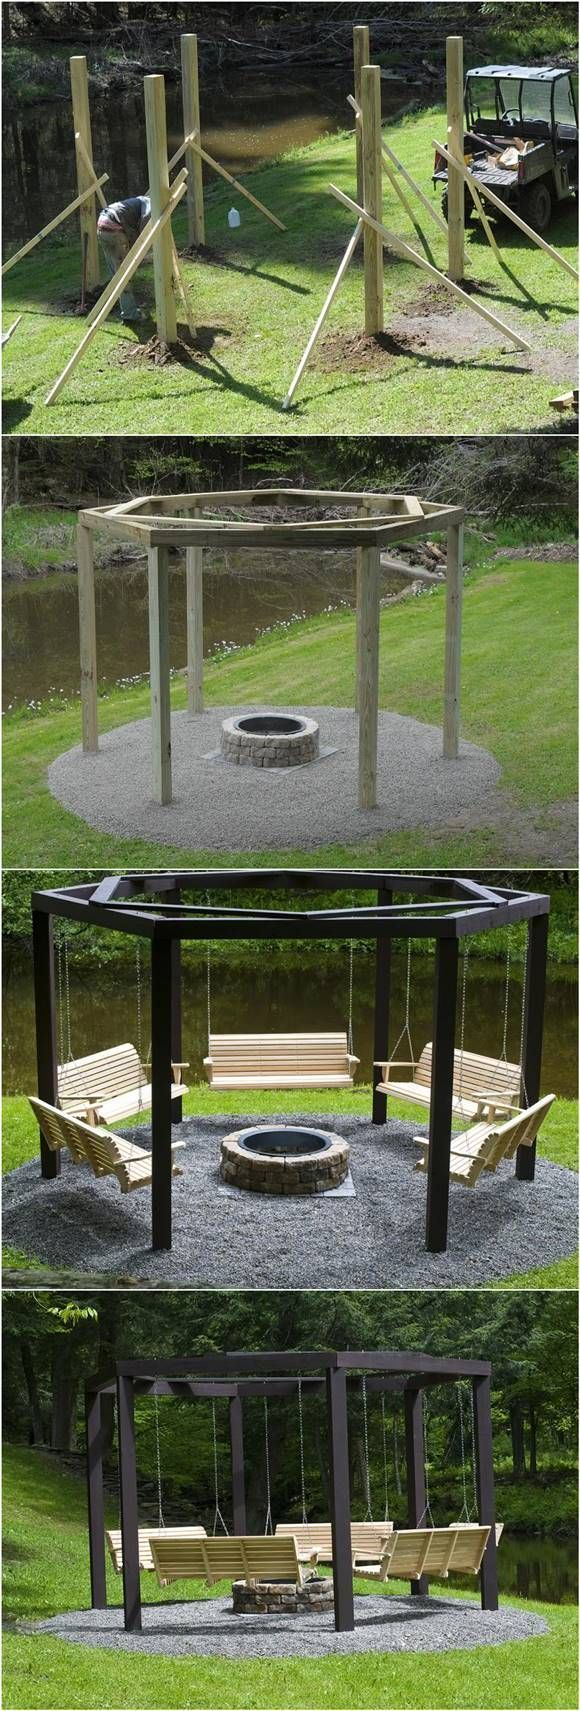 DIY Backyard Fire Pit mit Schaukelsitzen #backyard #home_improvement #bunkerplans